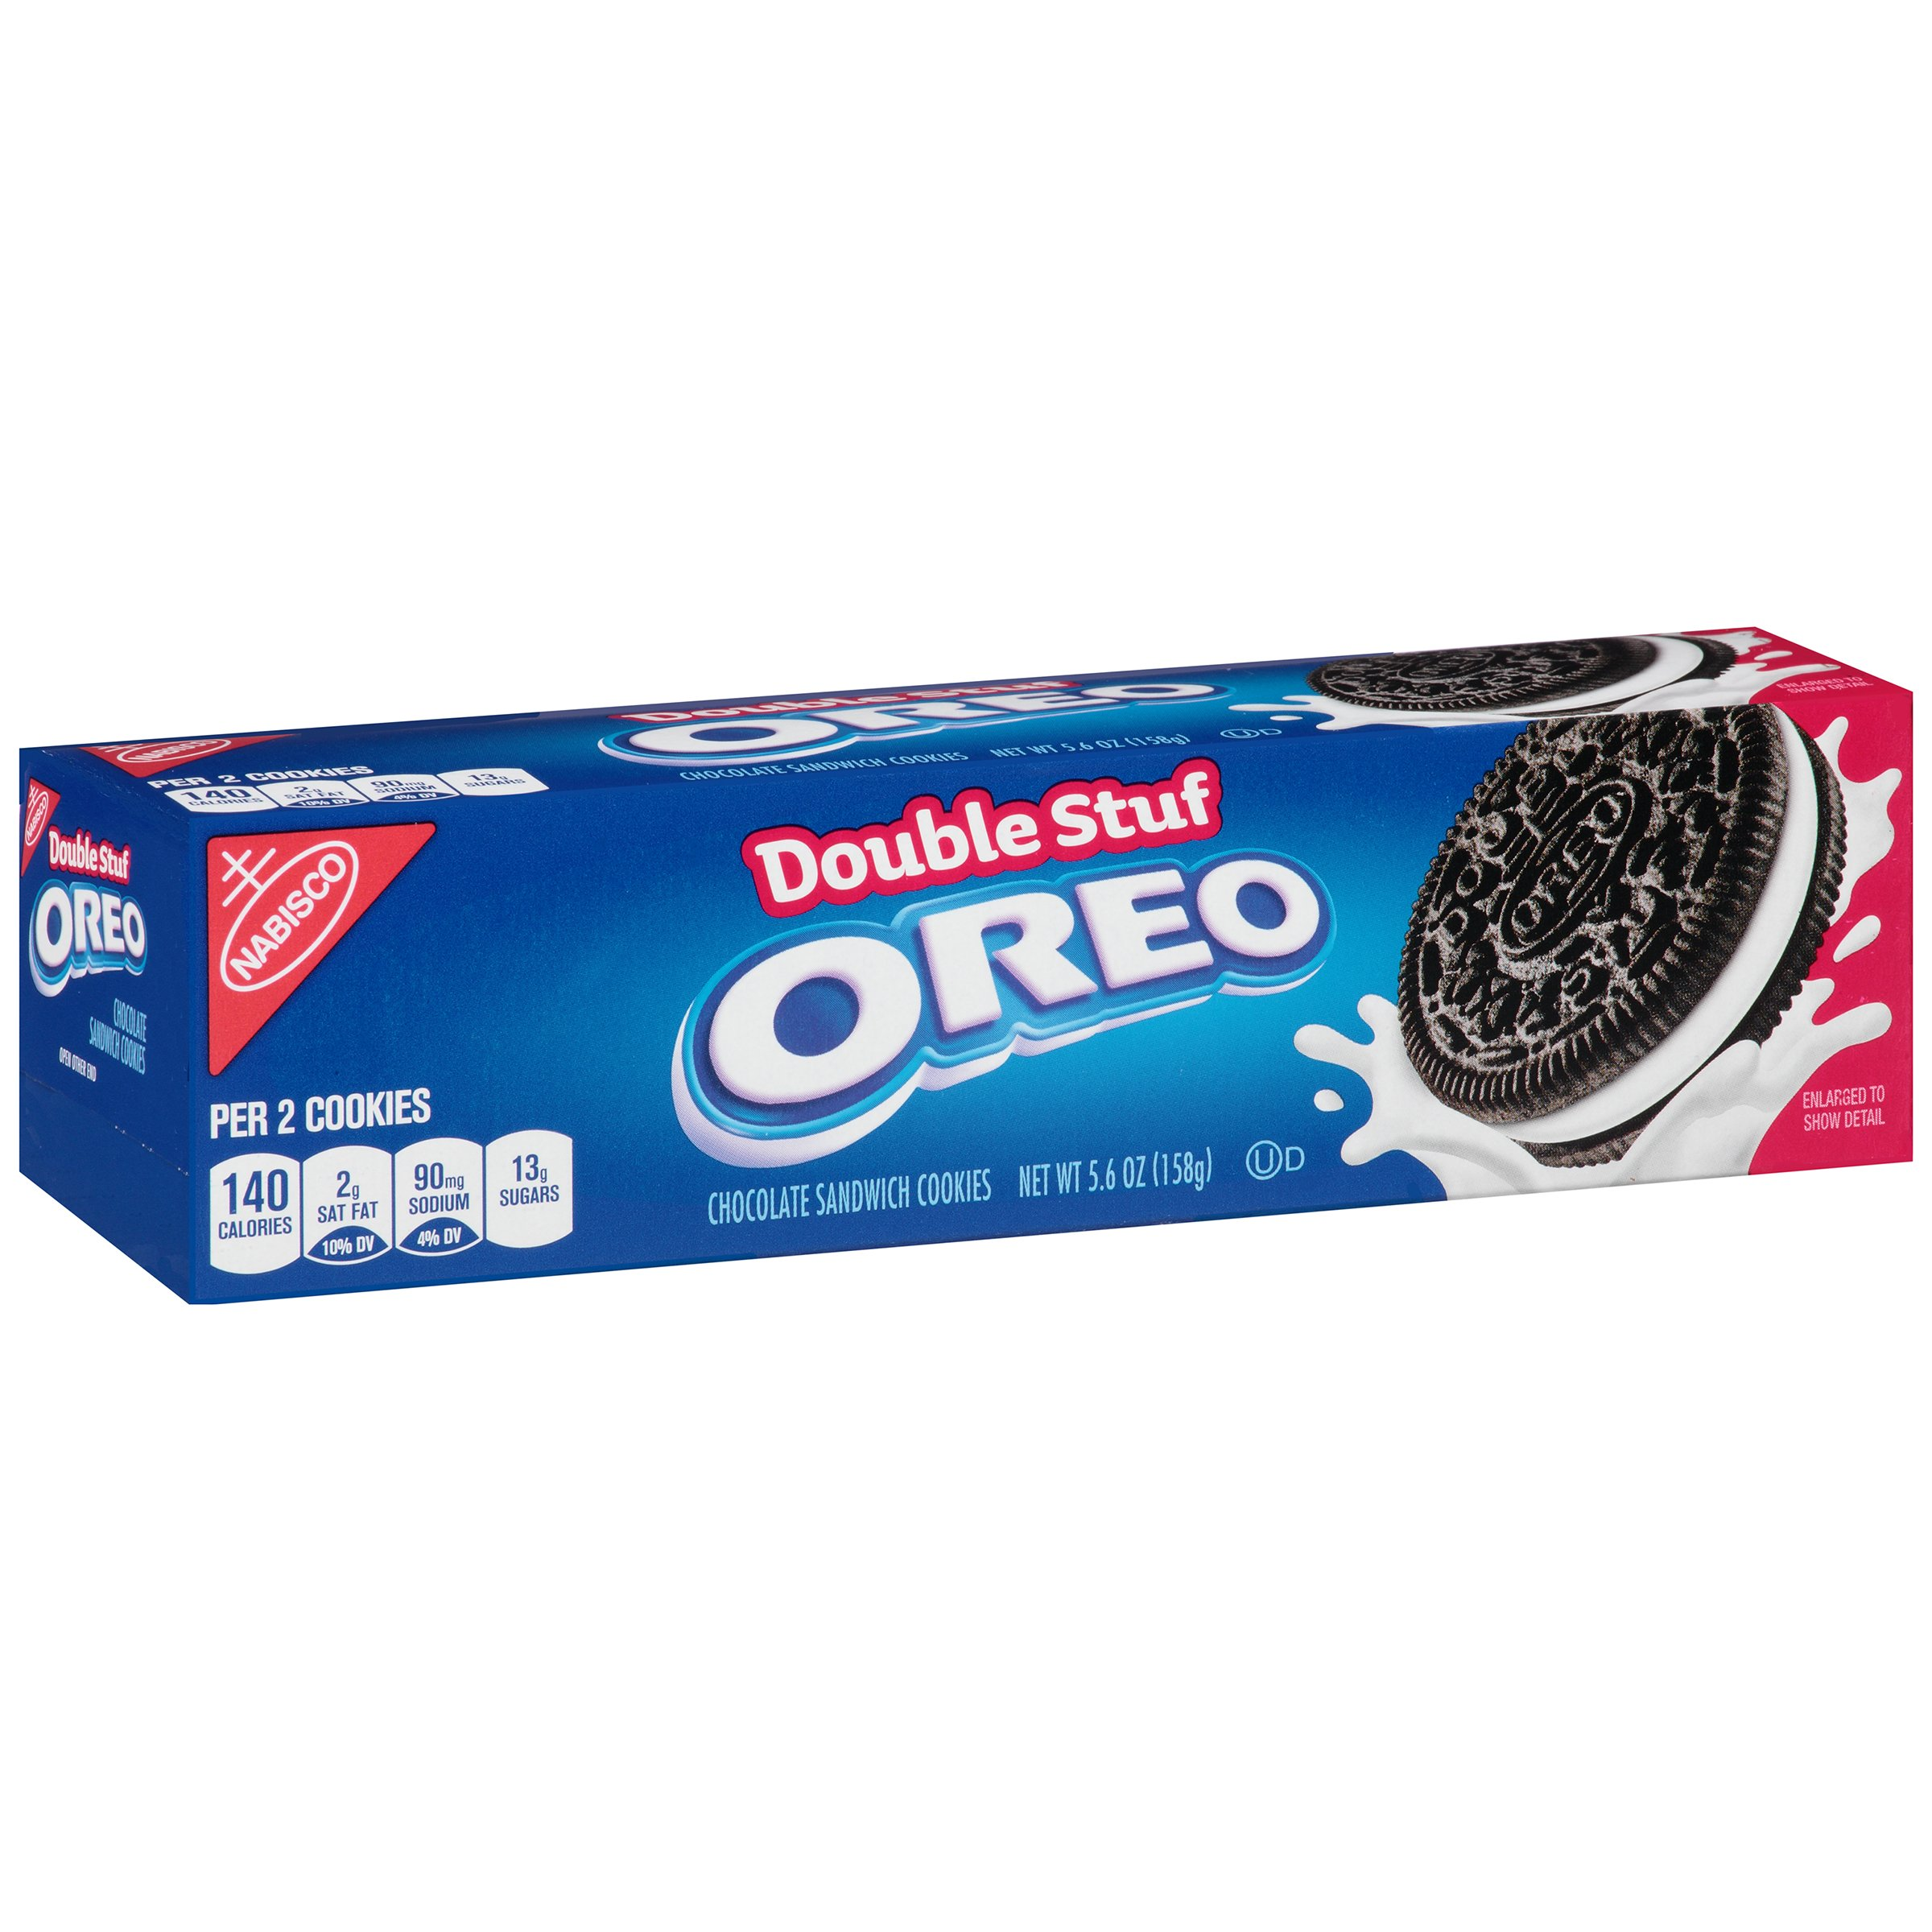 Oreo Double Stuf Chocolate Sandwich Cookies, 5.6 Ounce (Pack of 12)